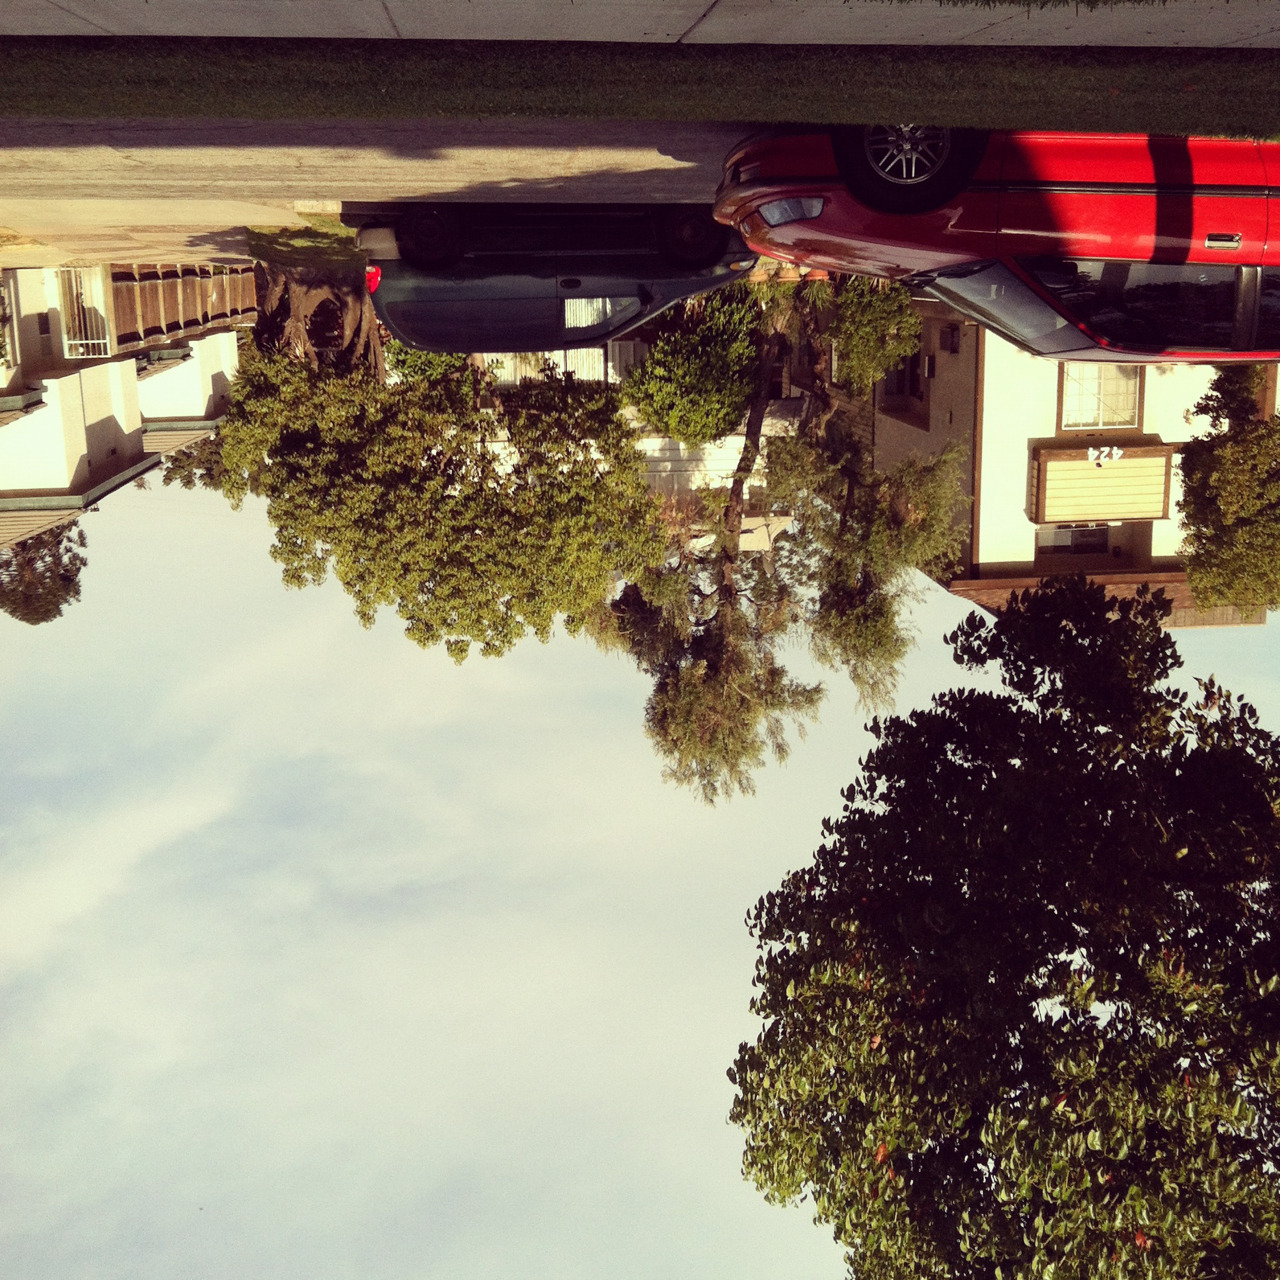 """Upside down"" July 11, 2012. iPhone 4. ©TBailey."